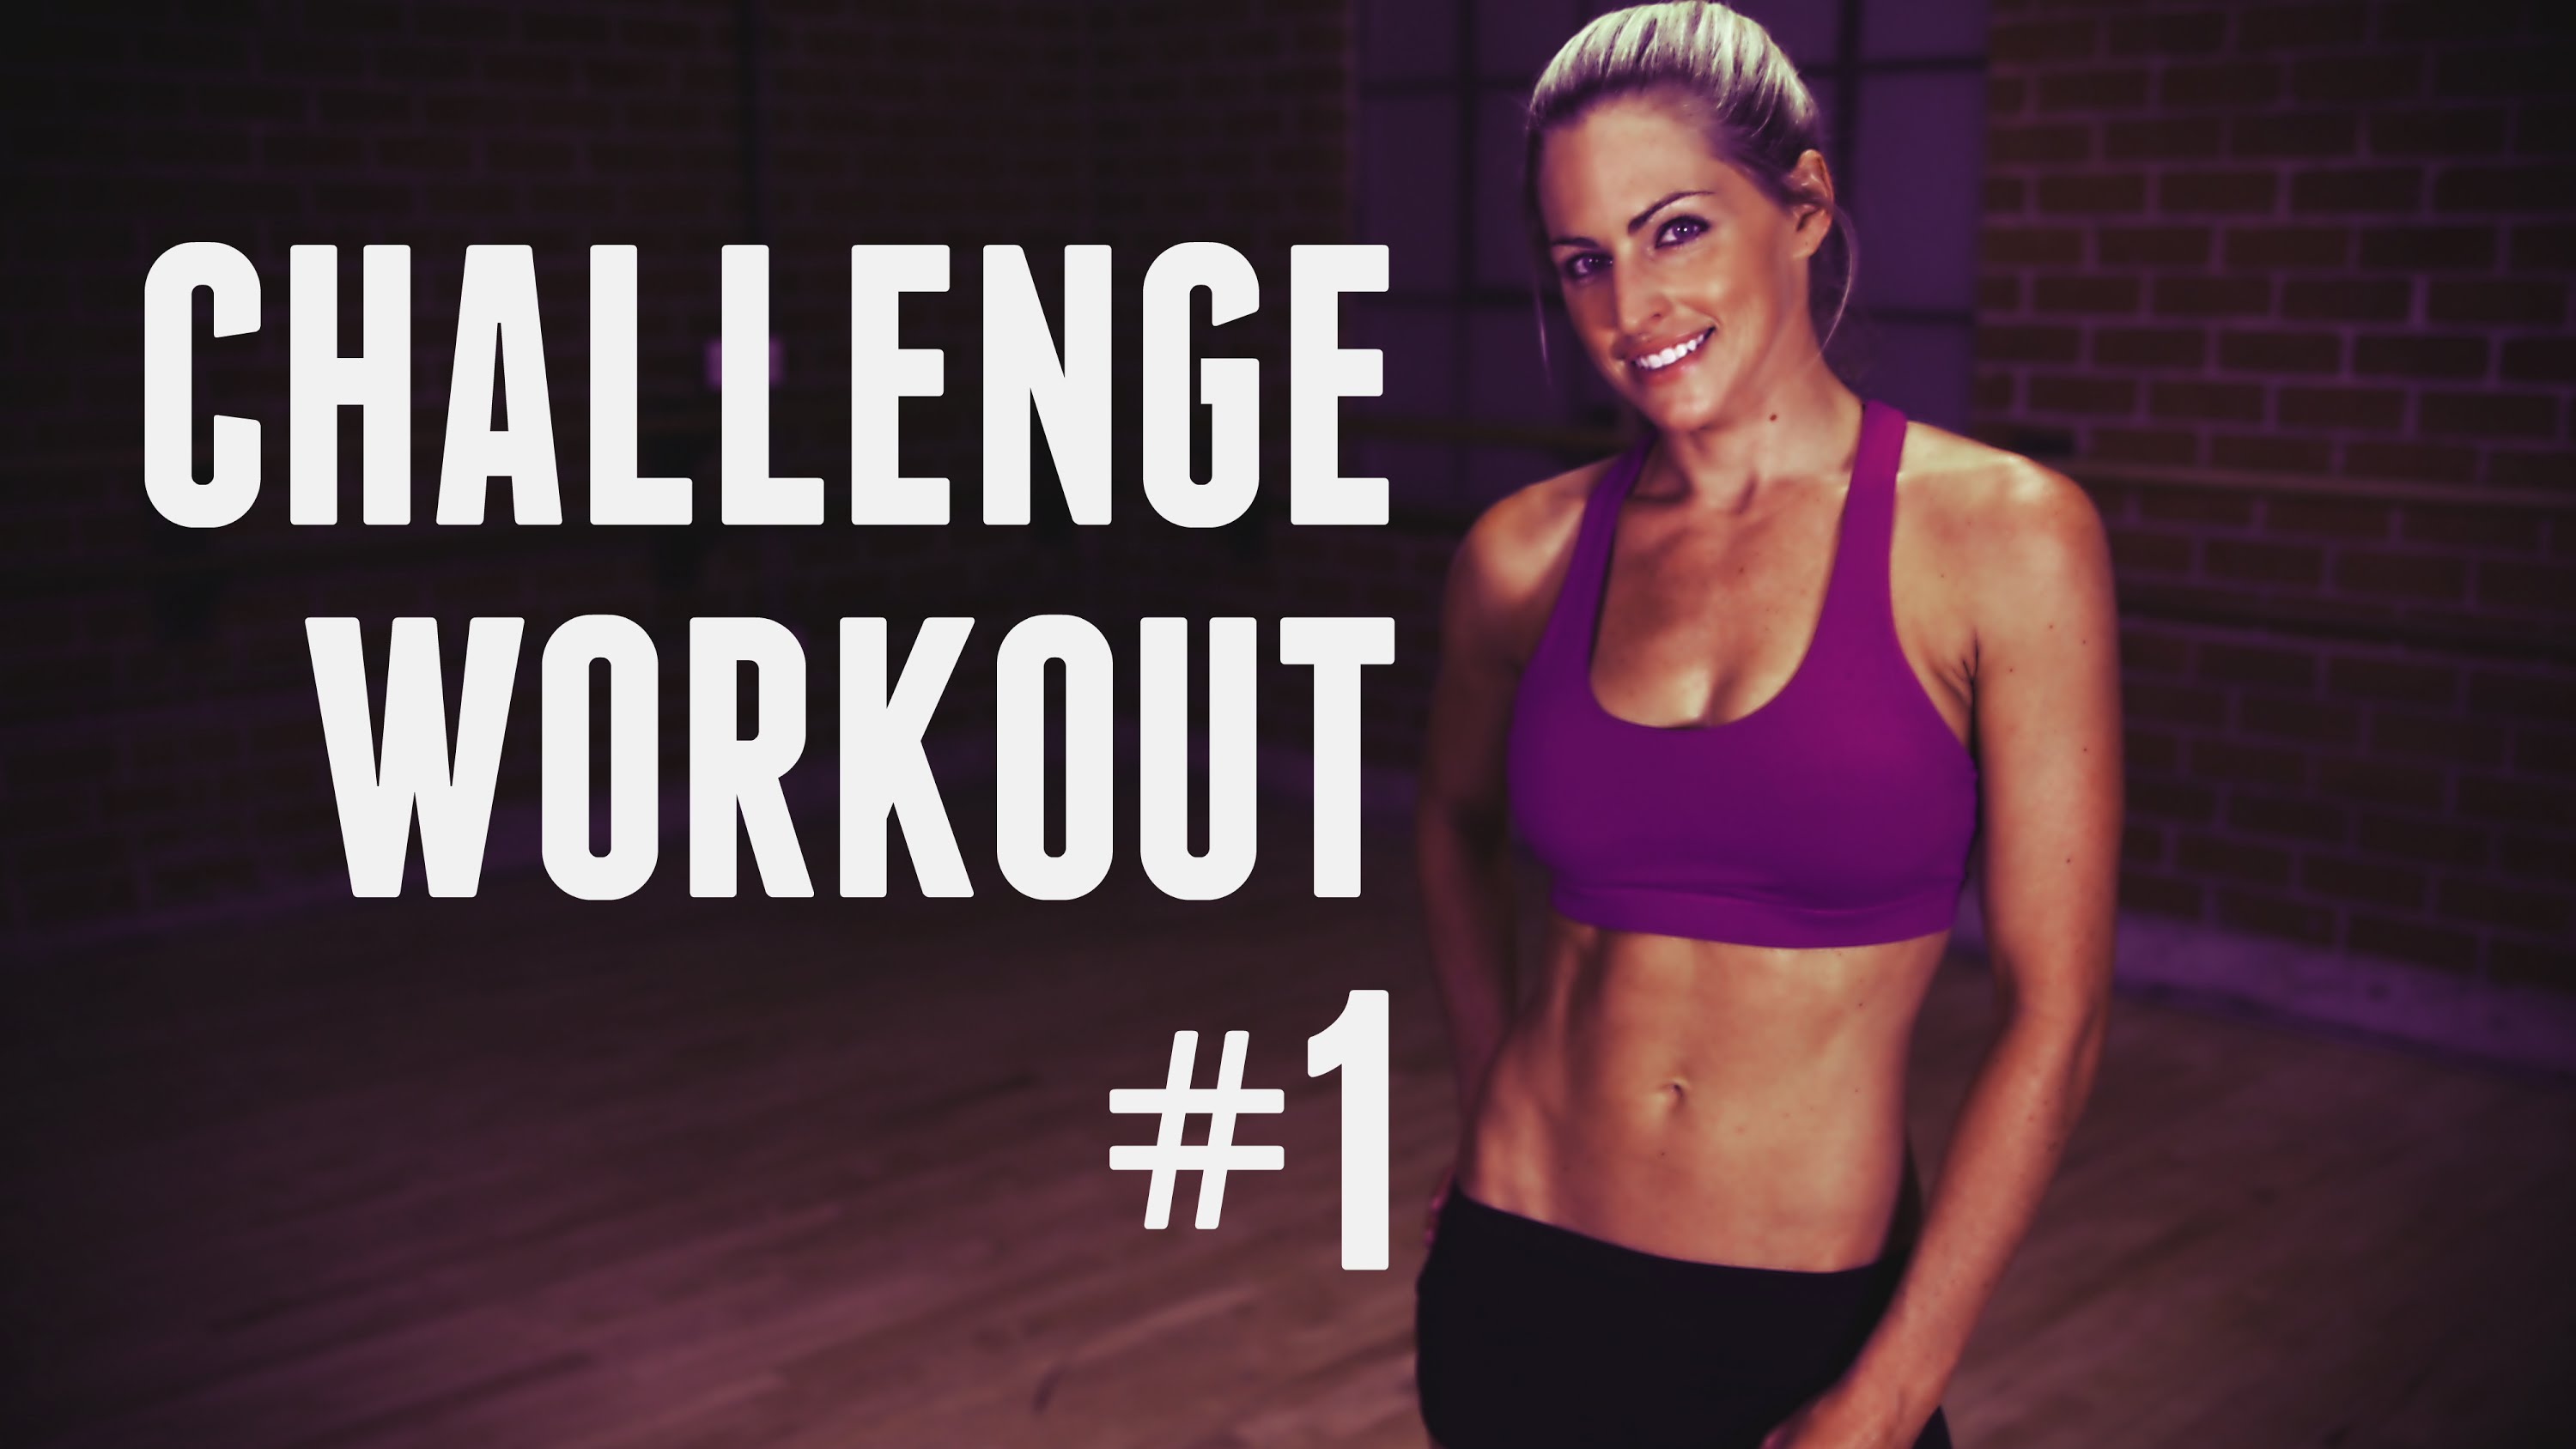 4 Week Challenge Workout – Total Body Workout to get you in Shape and Feeling Great